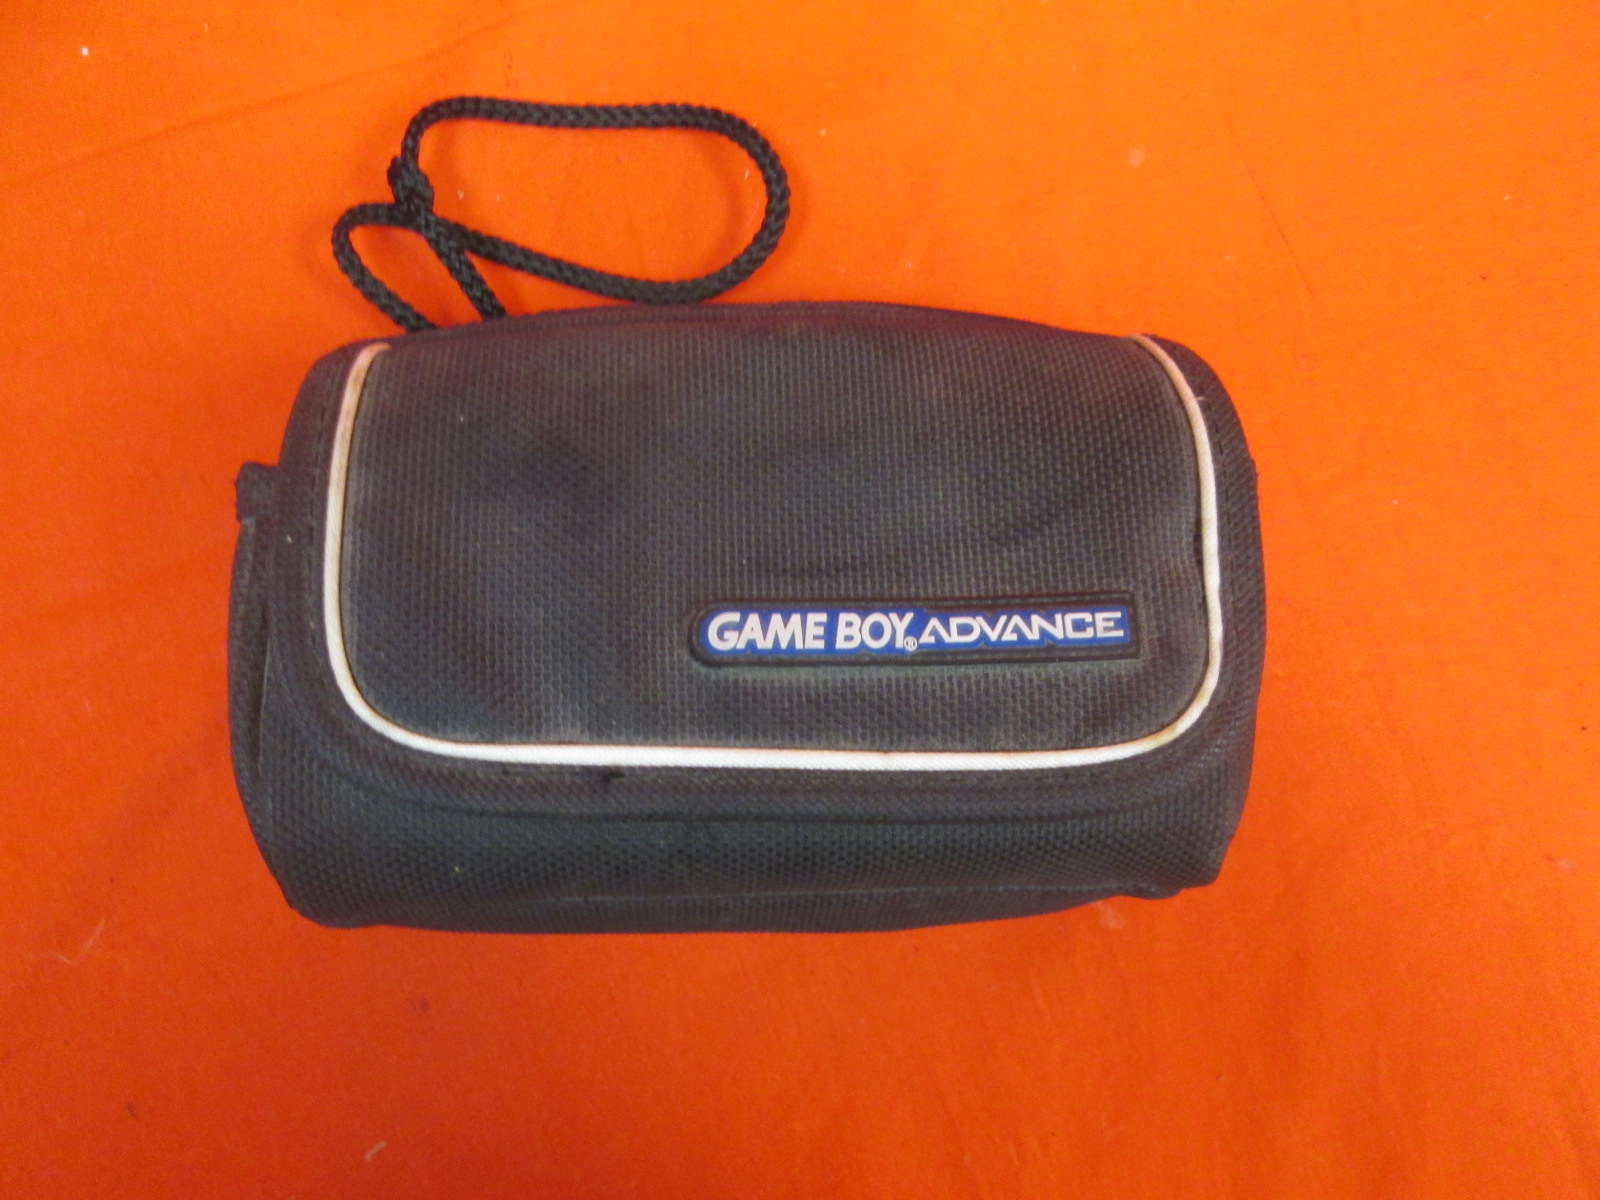 Game Boy Advance Case Black For GBA Gameboy Advance Console Games